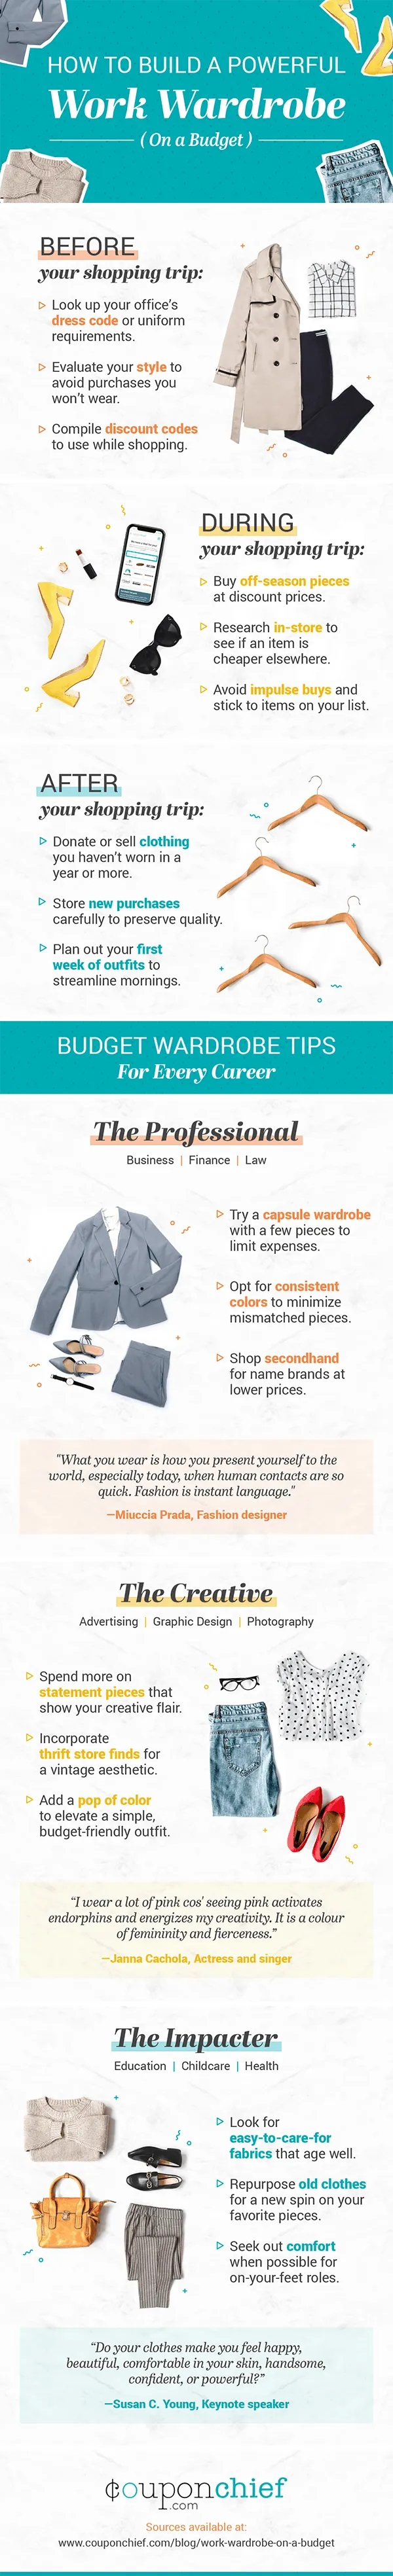 How to Build a Powerful Work Wardrobe on a Budget #infographic